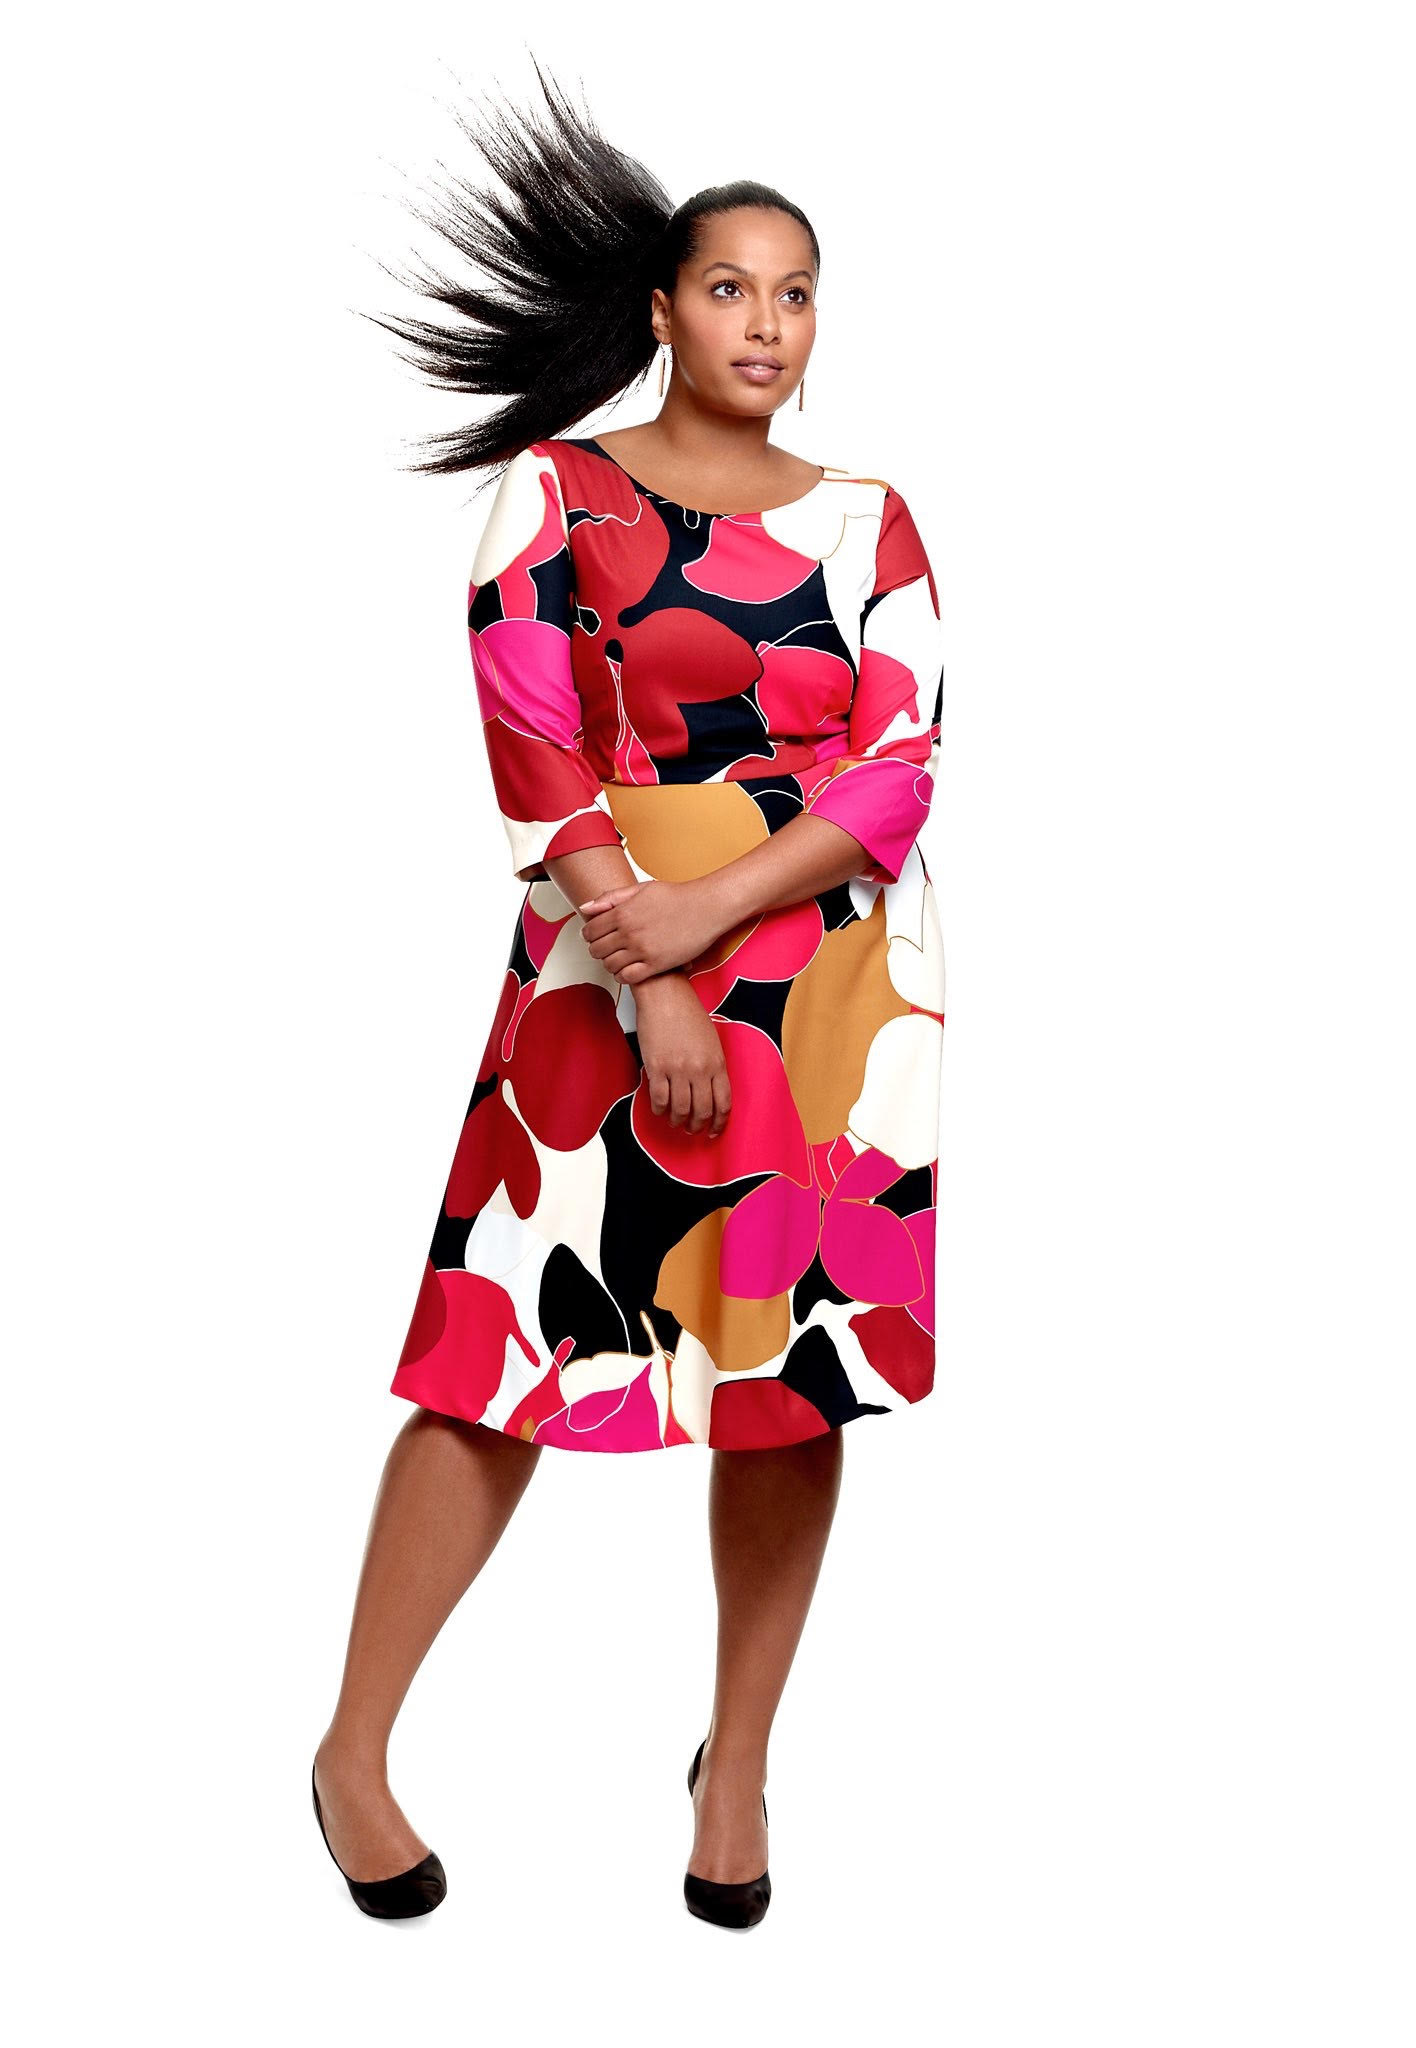 JCPenney Teams Up With Tracee Ellis Ross For Holiday ...